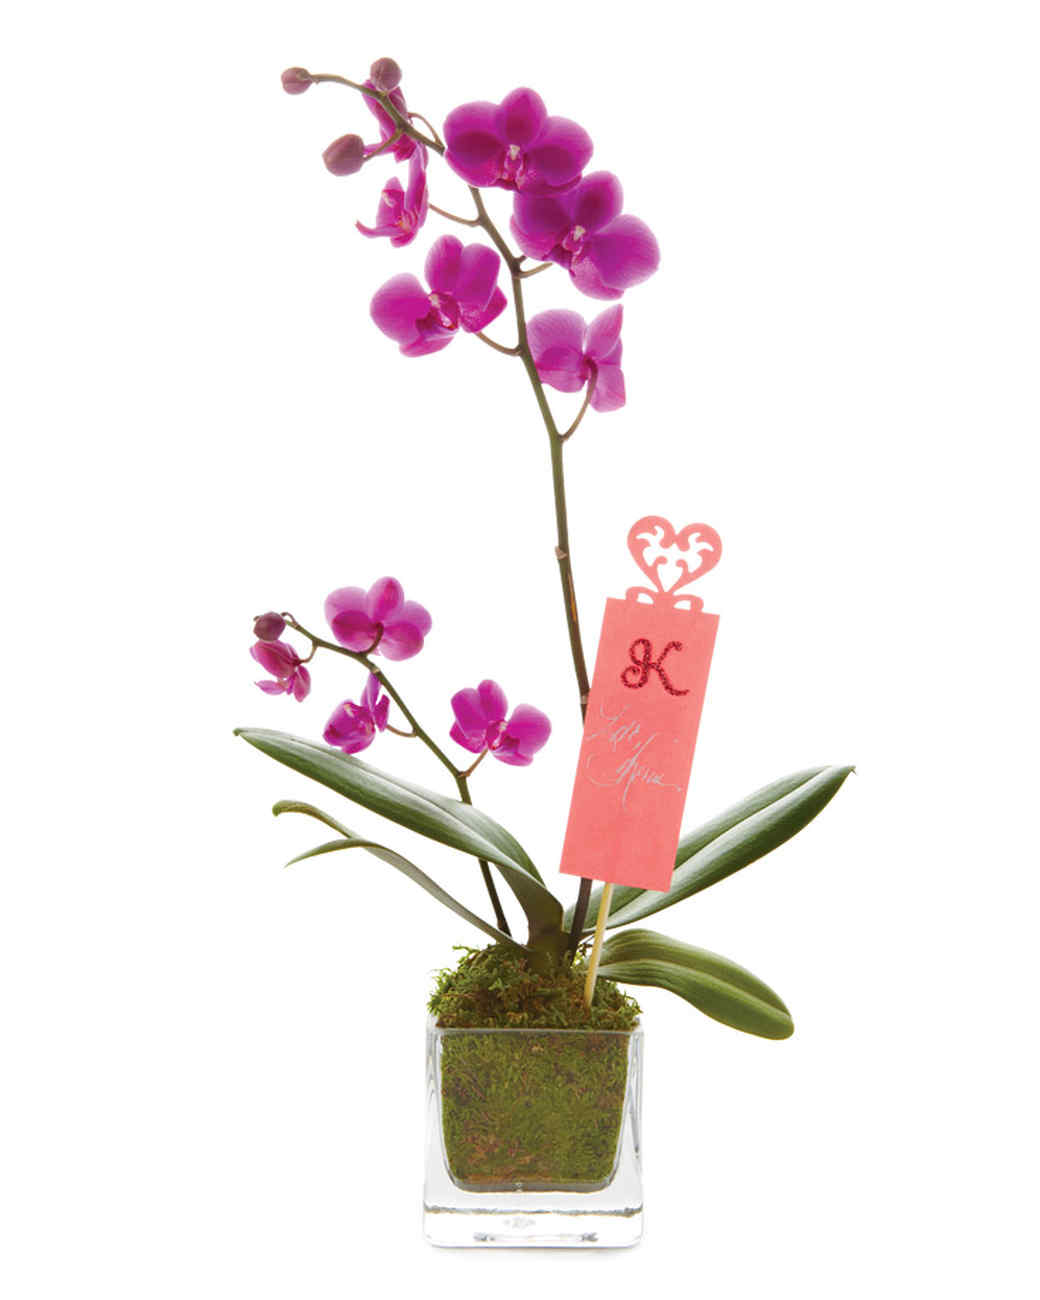 personalized gift tag tied onto orchid